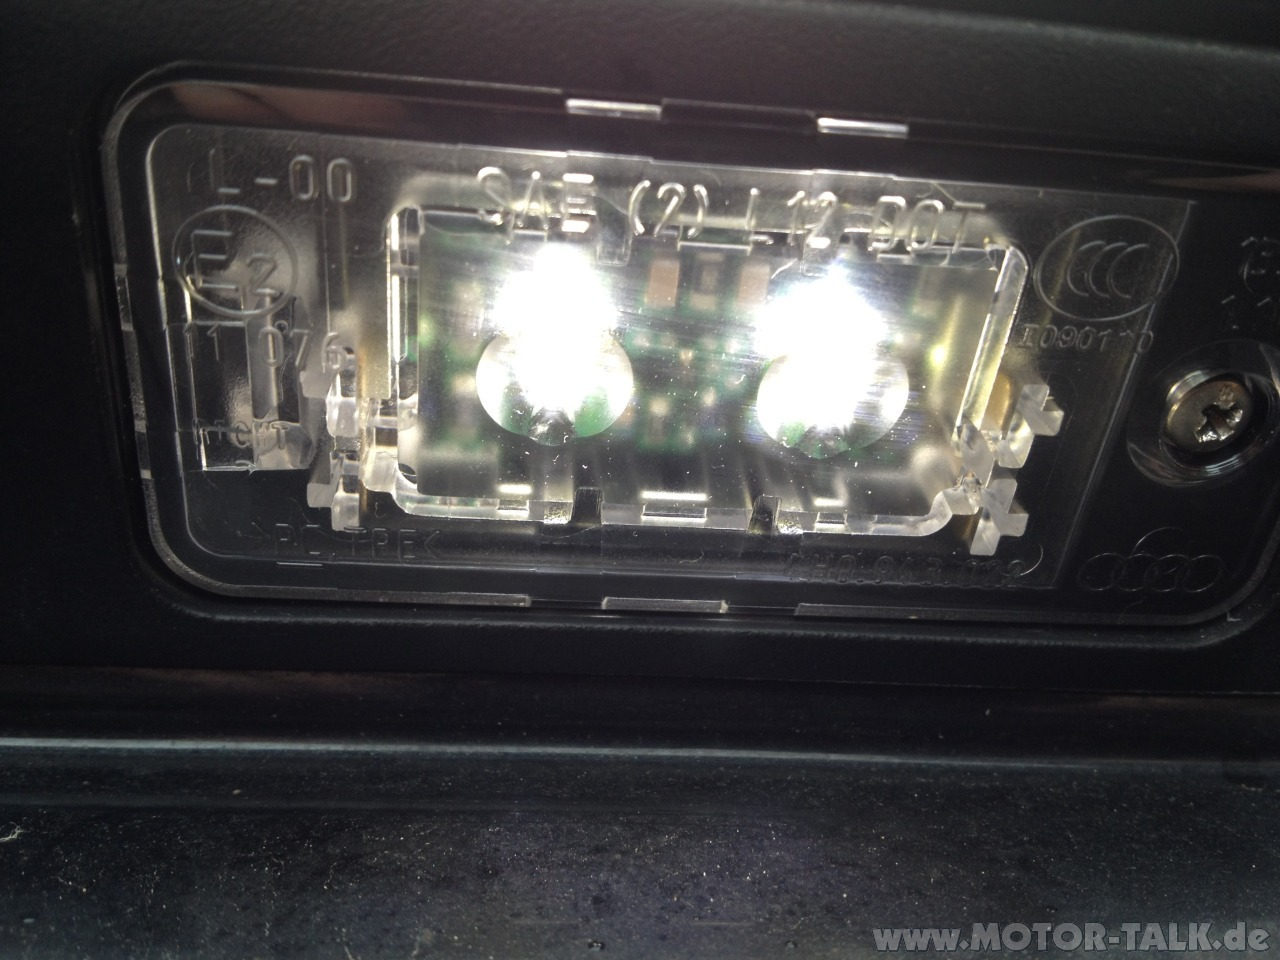 Plafoniera Targa Led Golf 7 : Installazione luci targa a led? [archivio] pagina 3 forum dell